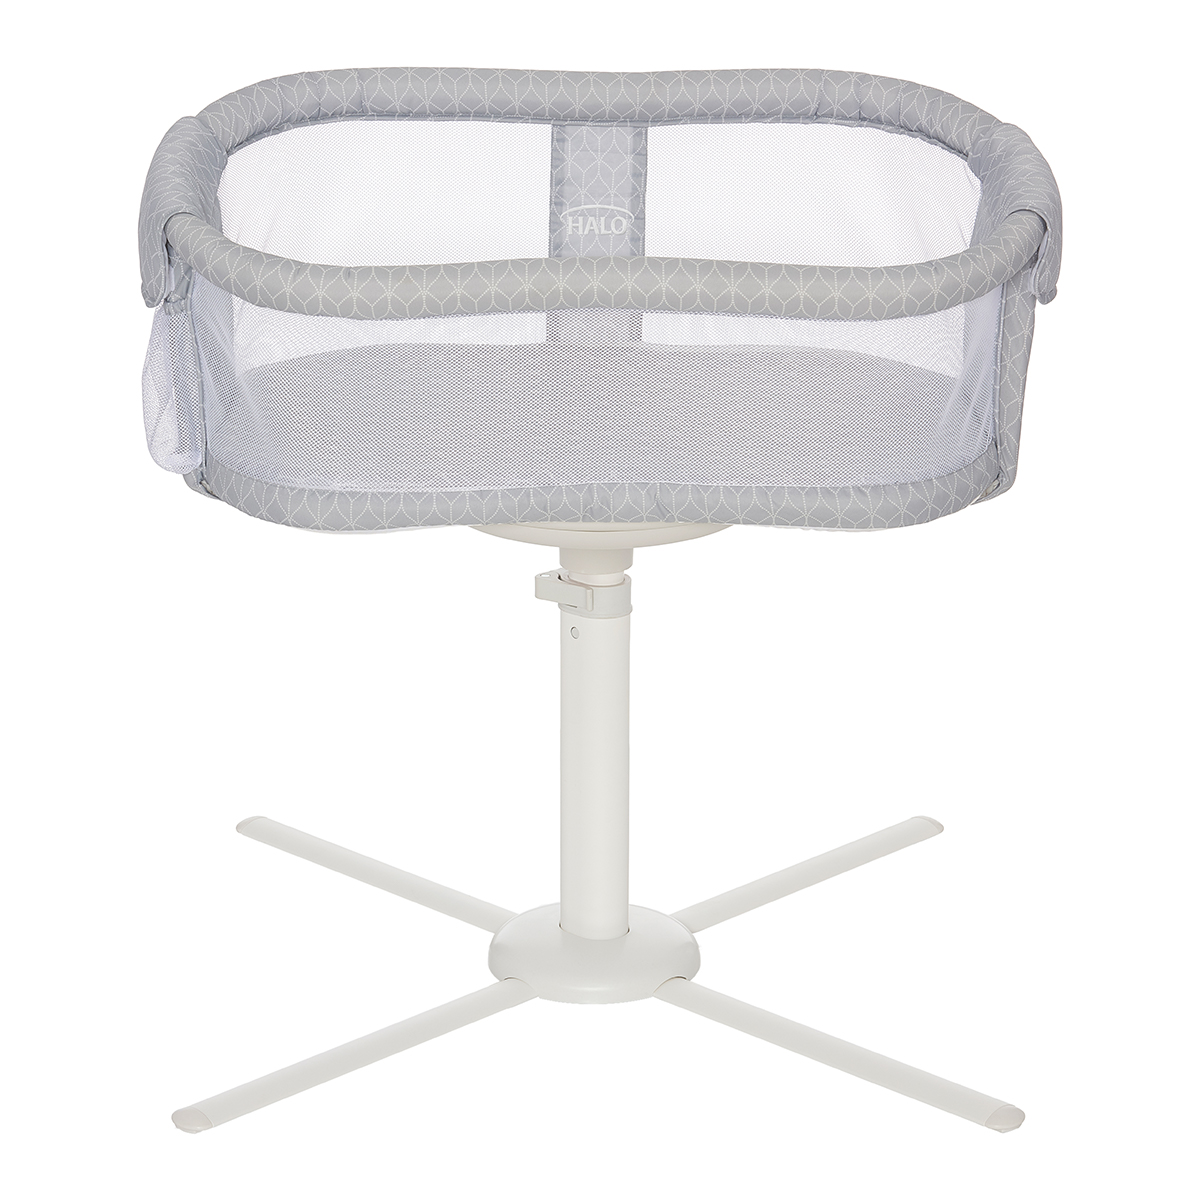 Halo Bassinest Swivel Sleeper Essential Morning Mist